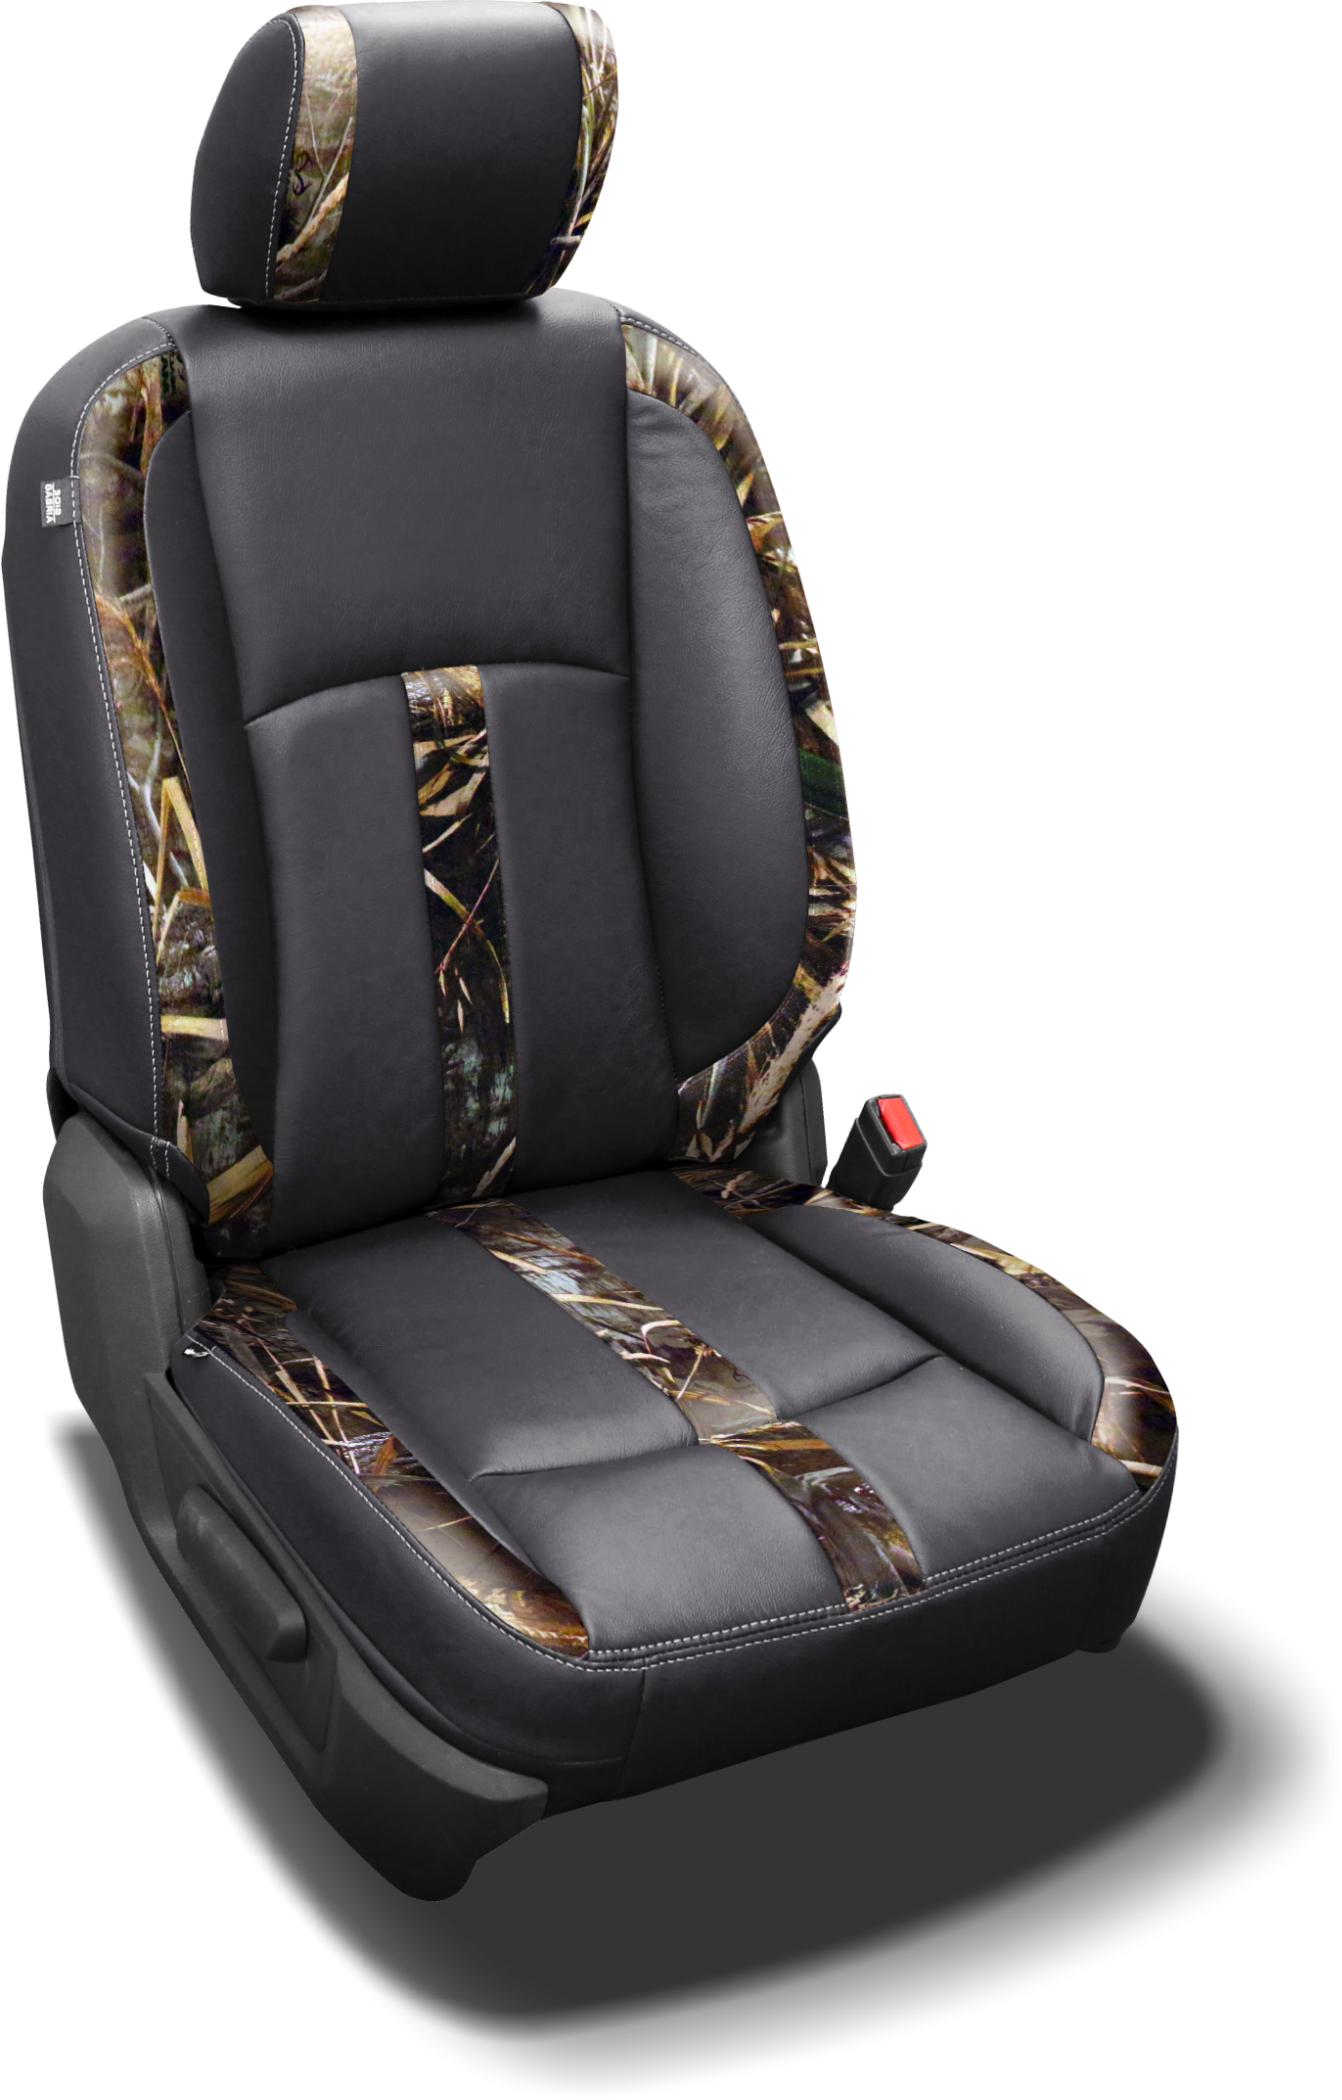 autozone seat covers for cars latest news car. Black Bedroom Furniture Sets. Home Design Ideas